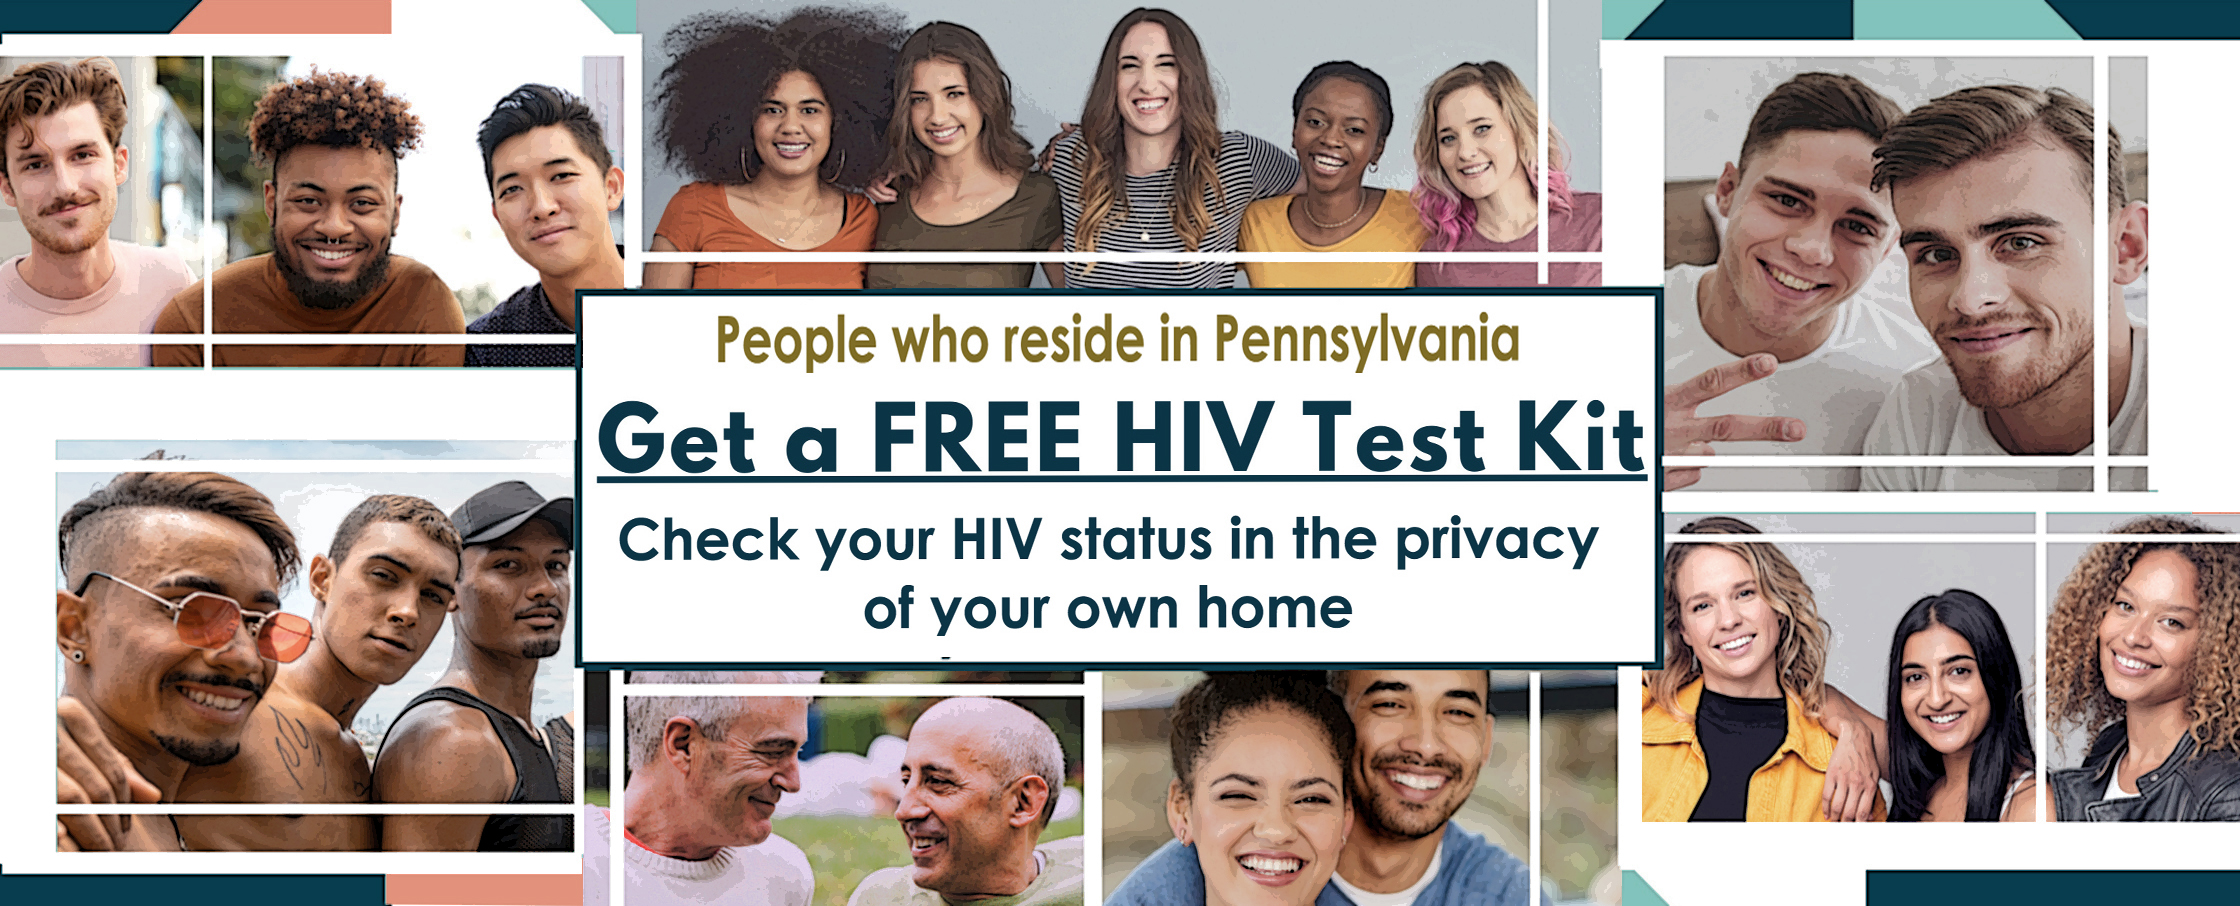 a diverse group of people with the text saying people who reside in Pennsylvania can get a Free H I V test kit check your H I V status in the privacy of your own home